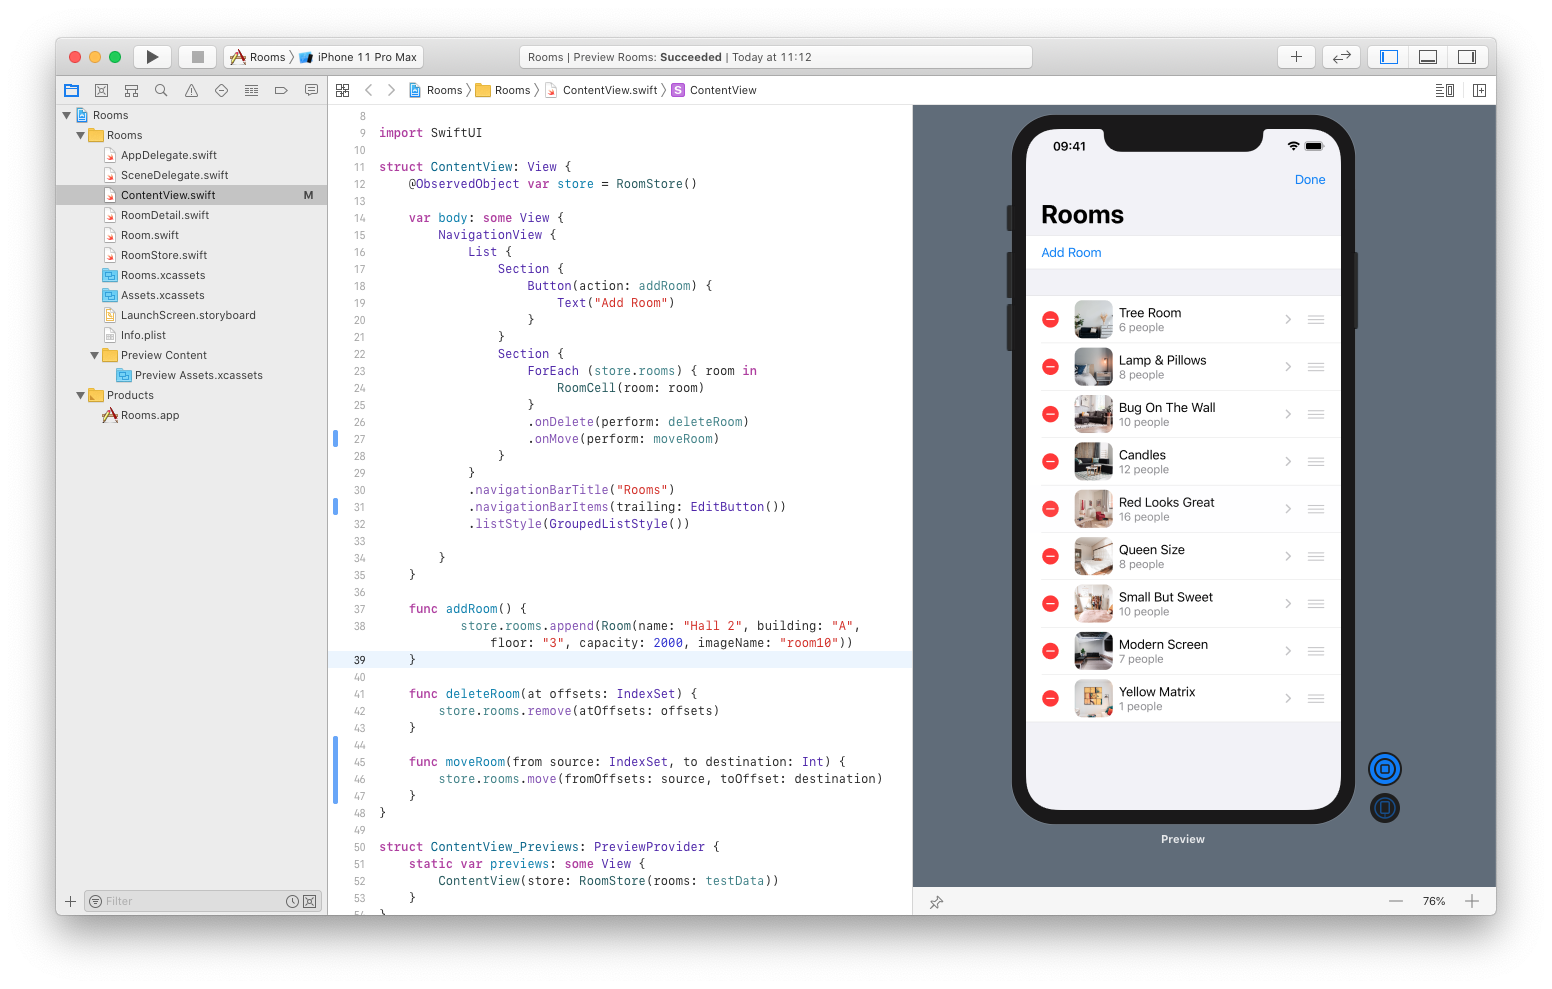 https://res.cloudinary.com/zavrelj/image/upload/v1578455661/codewithjan/swiftui-by-examples/swiftui-by-examples-58.png